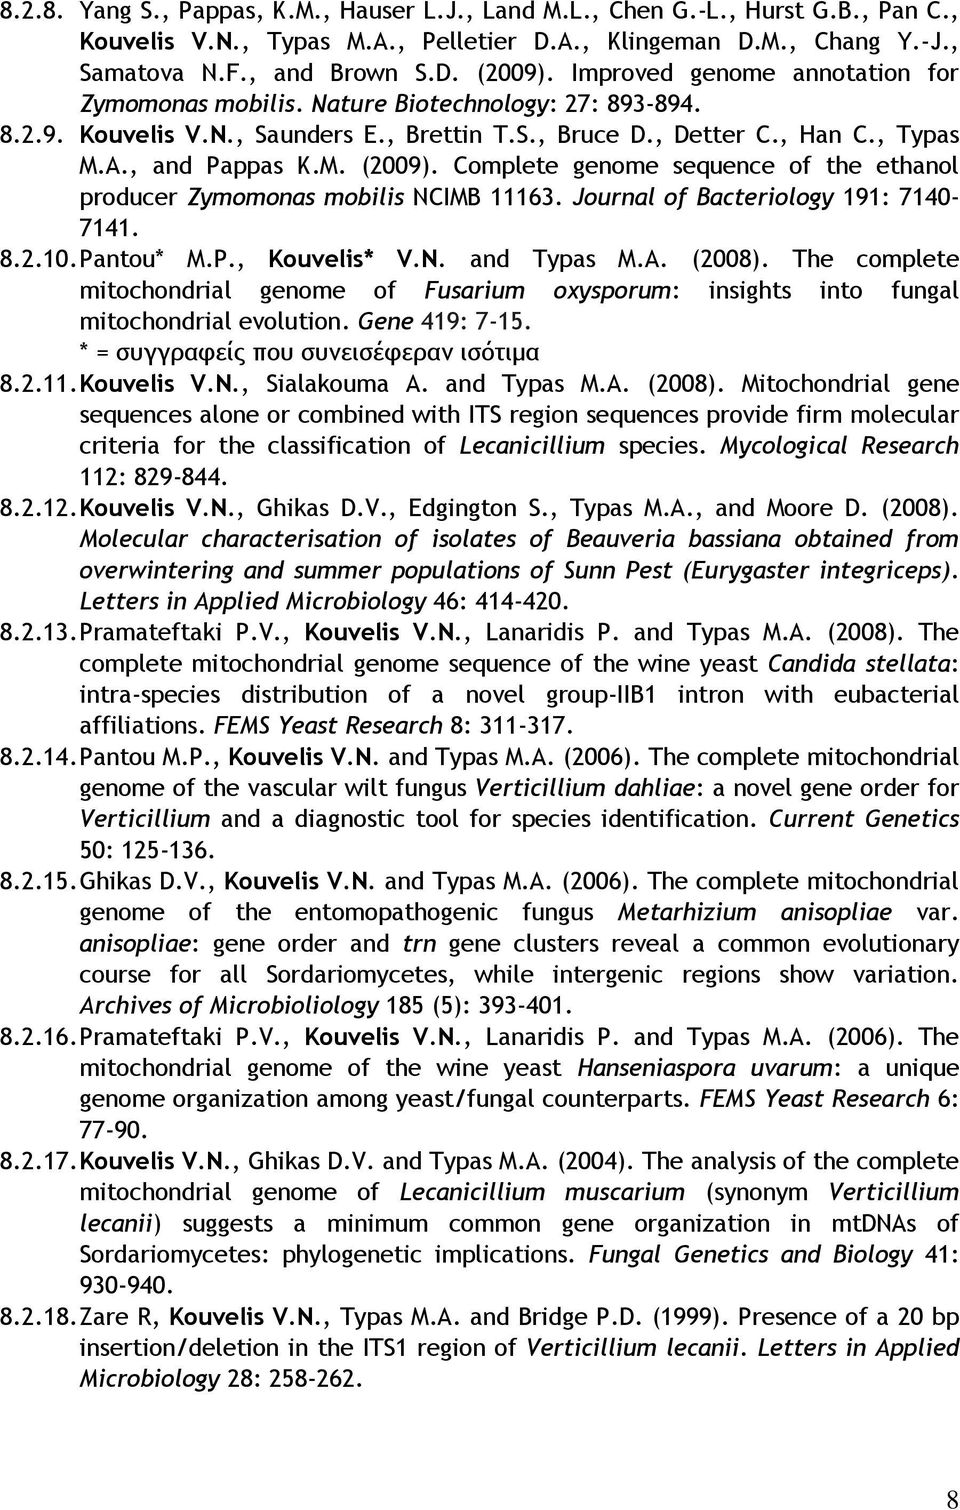 Complete genome sequence of the ethanol producer Zymomonas mobilis NCIMB 11163. Journal of Bacteriology 191: 7140-7141. 8.2.10. Pantou* M.P., Kouvelis* V.N. and Typas M.A. (2008).